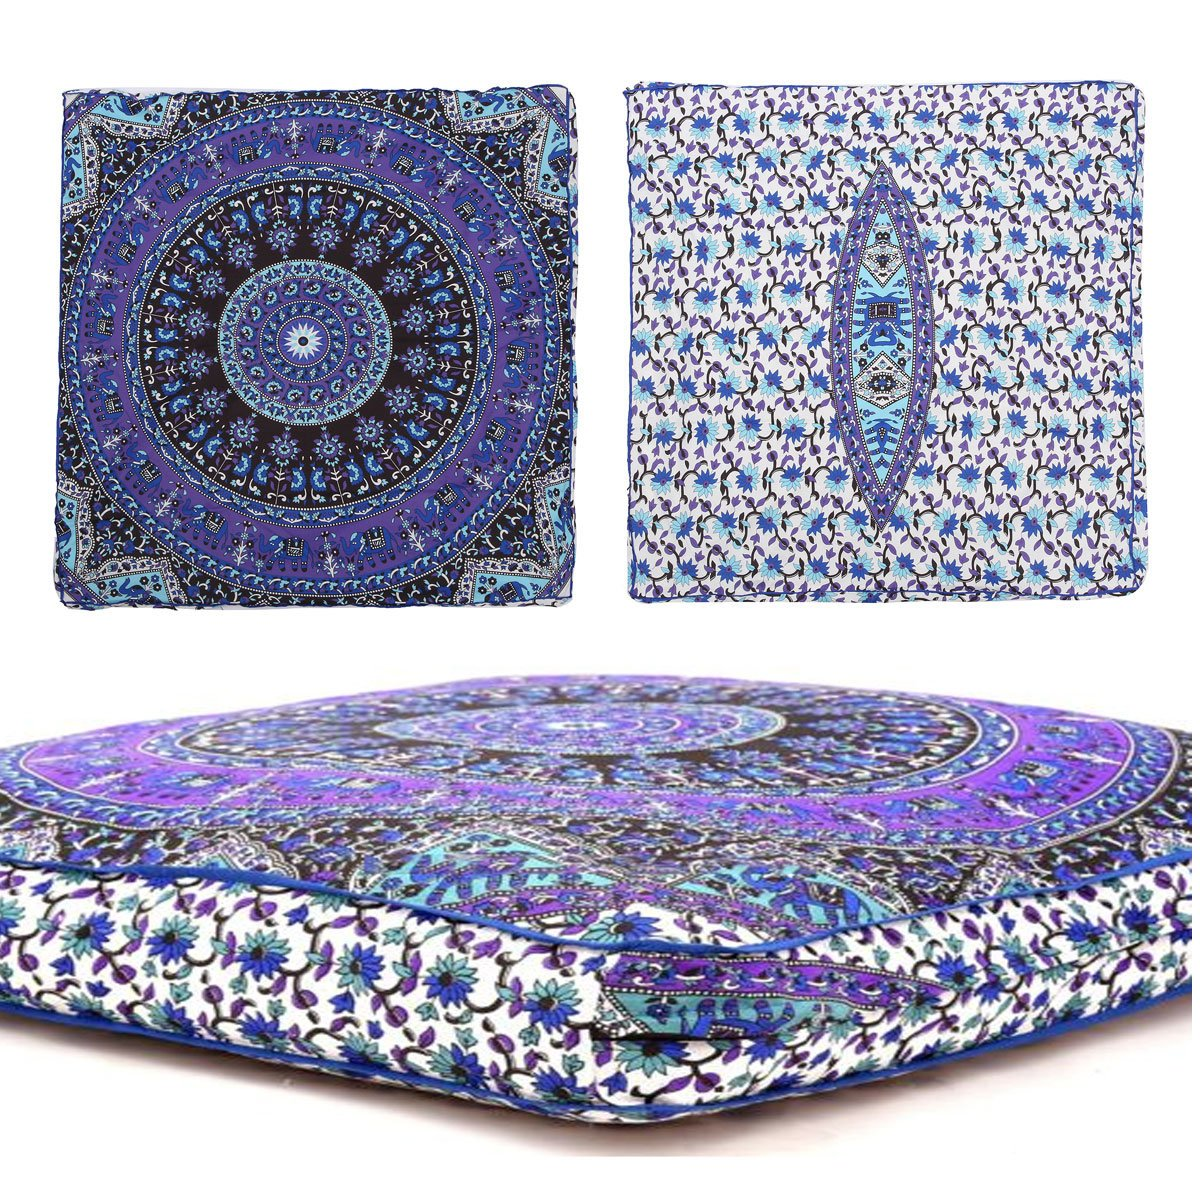 Third Eye Export - Indian Mandala Floor Pillow Square Ottoman Pouf Daybed Oversized Cushion Cover Cotton Seating Ottoman Poufs Dog/Pets Bed (White) by Third Eye Export